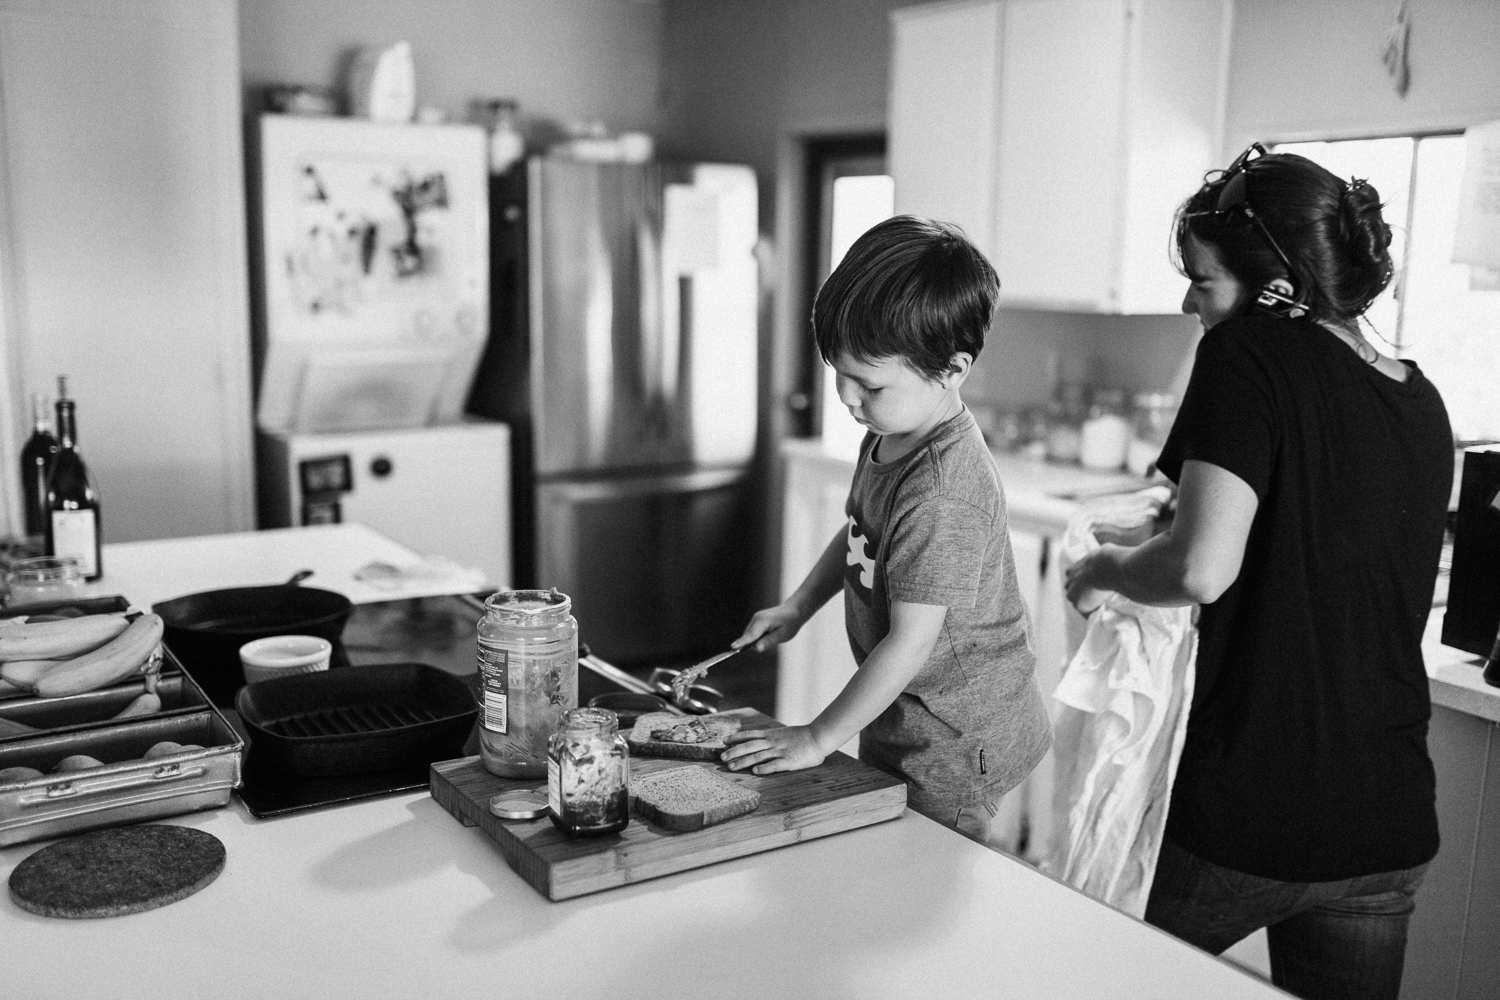 boy-making-sandwich-in-the-home-family-photojournalism-san-diego-california